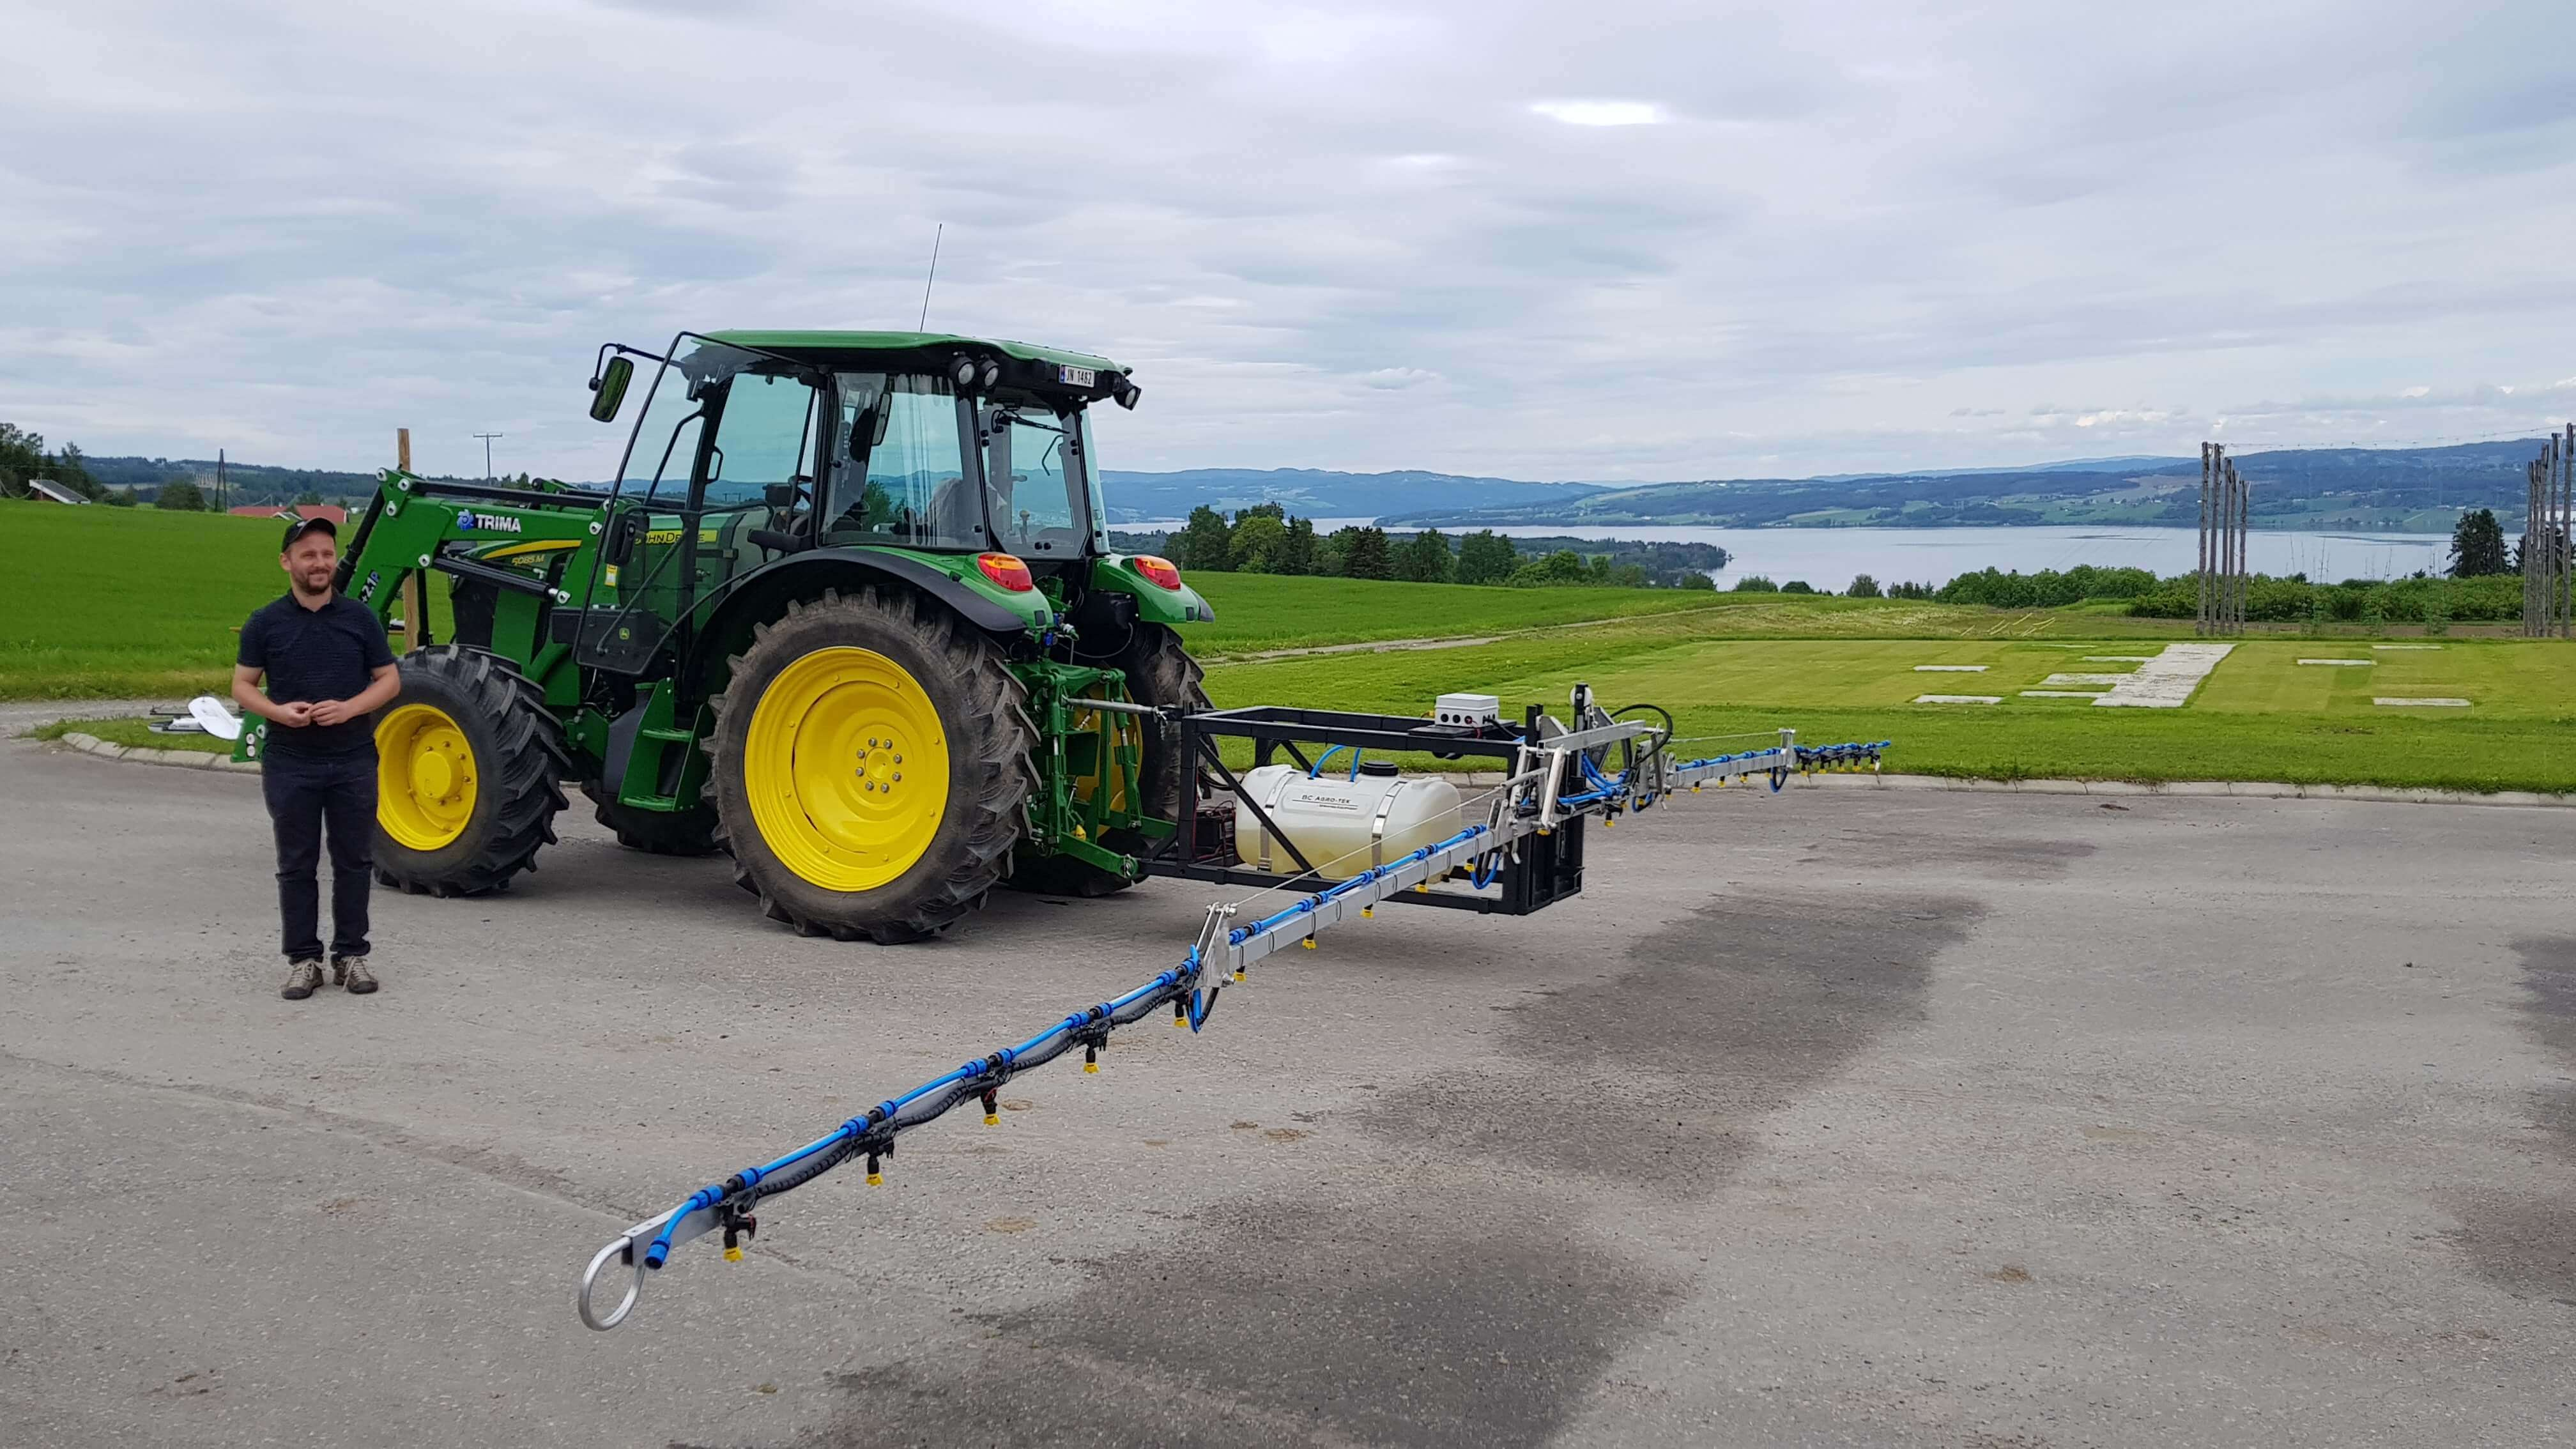 A precise fertilizer applicator prototype